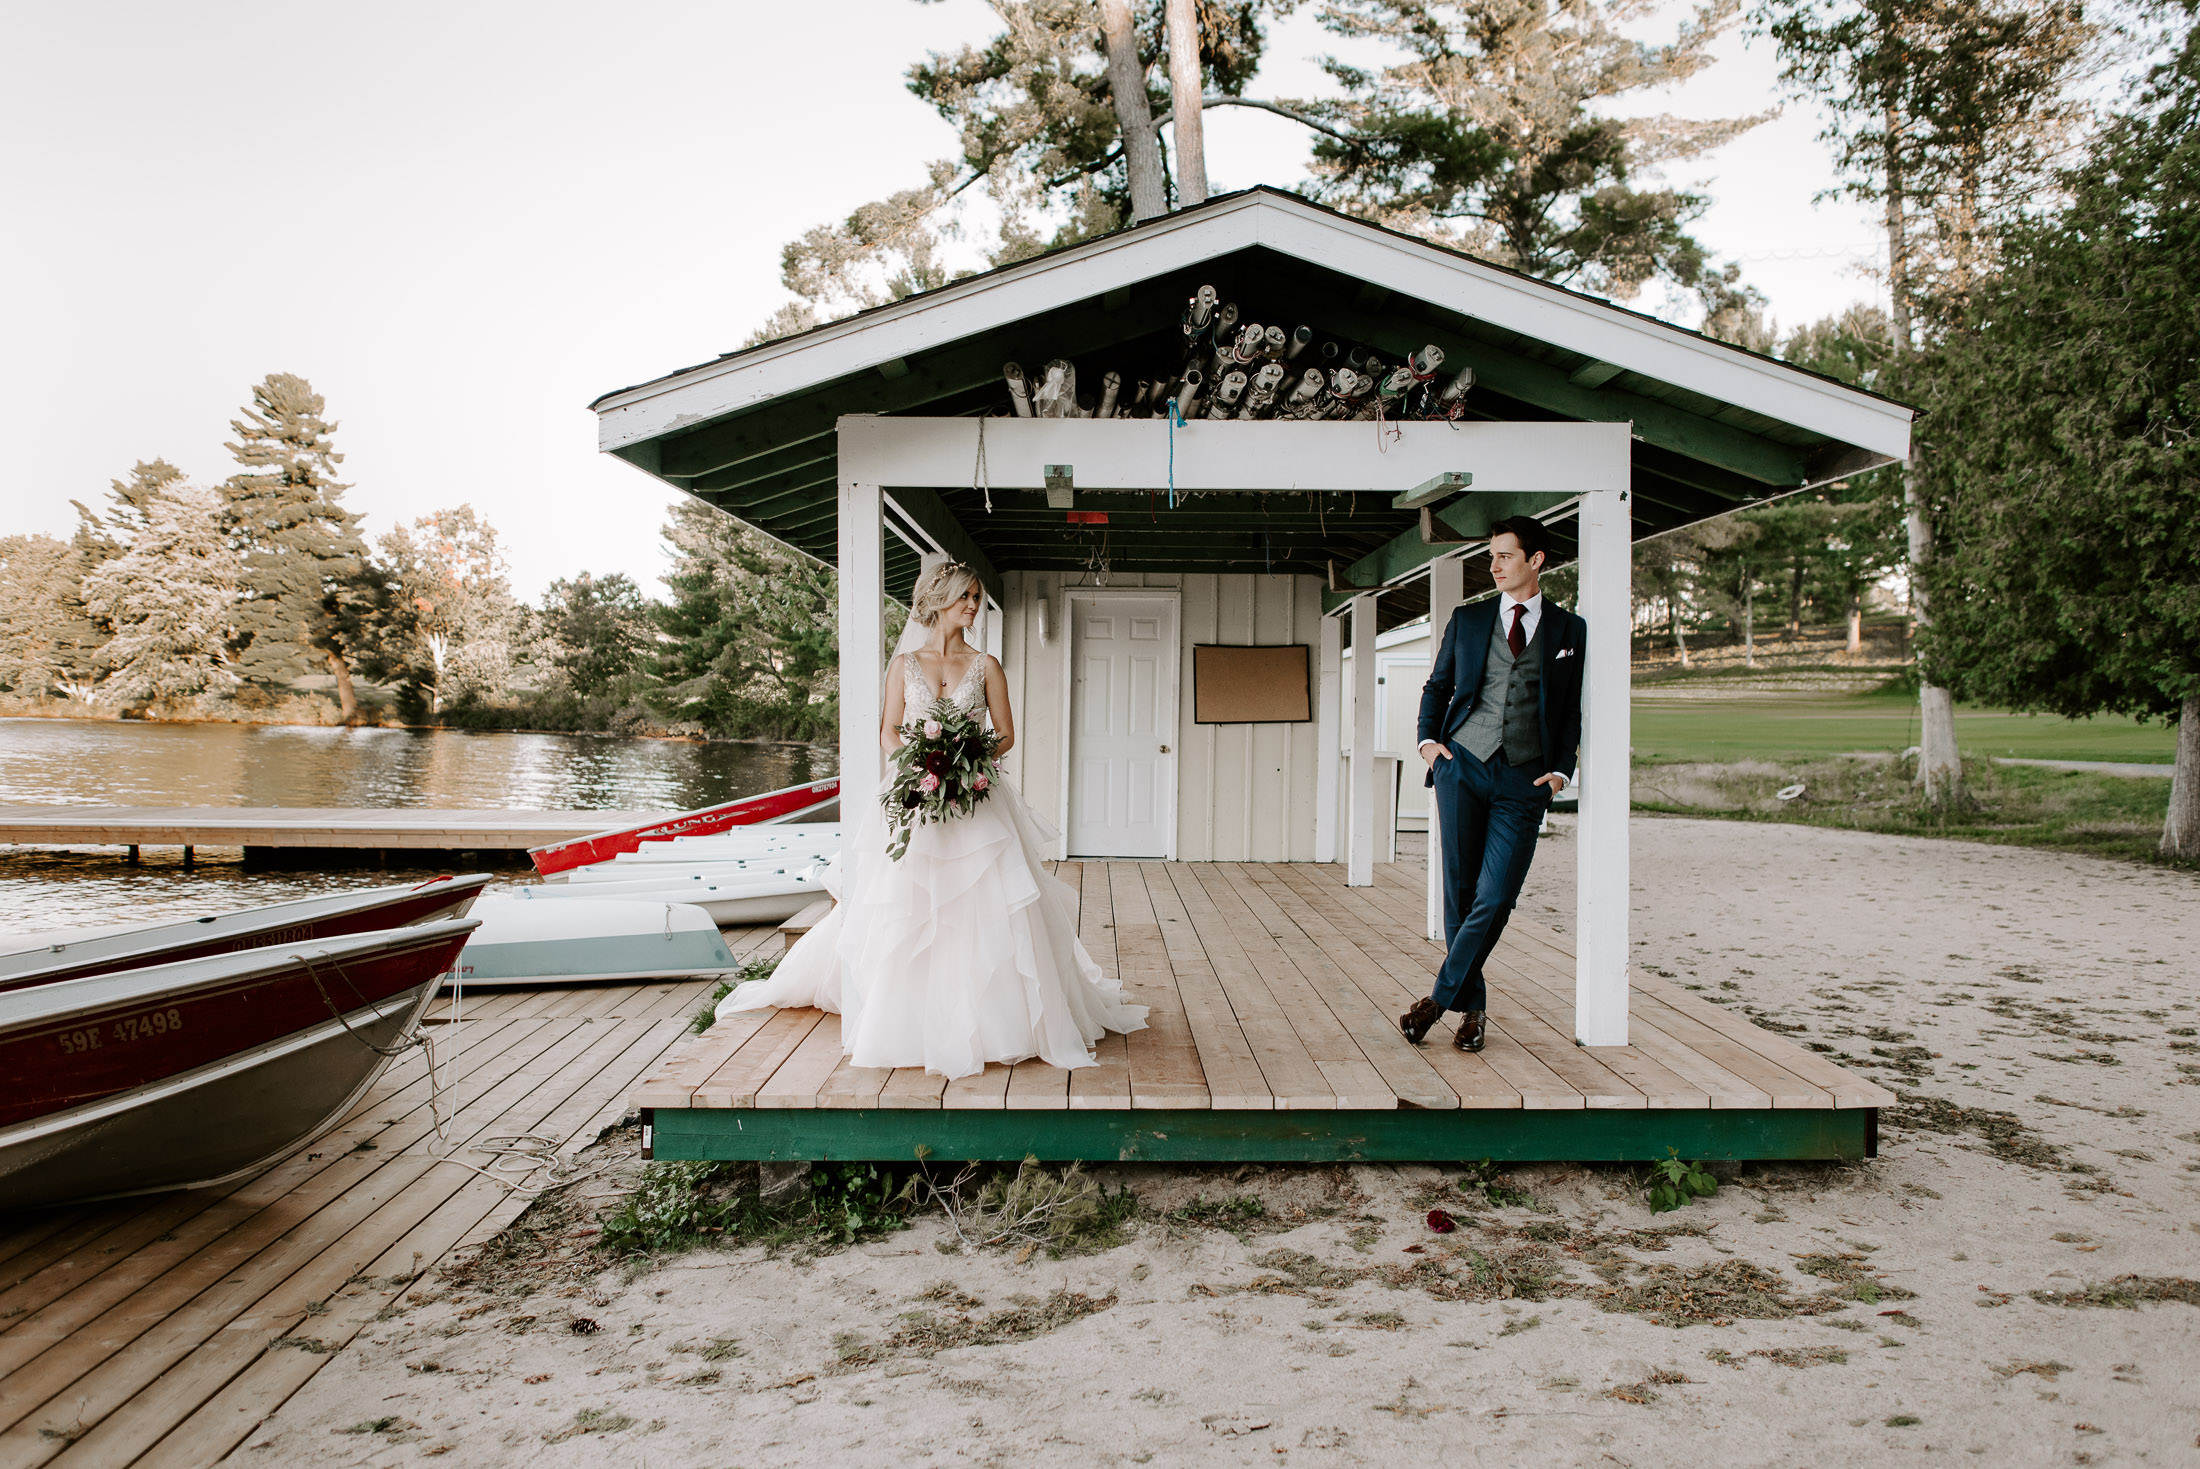 Best Wedding Photographer in Toronto